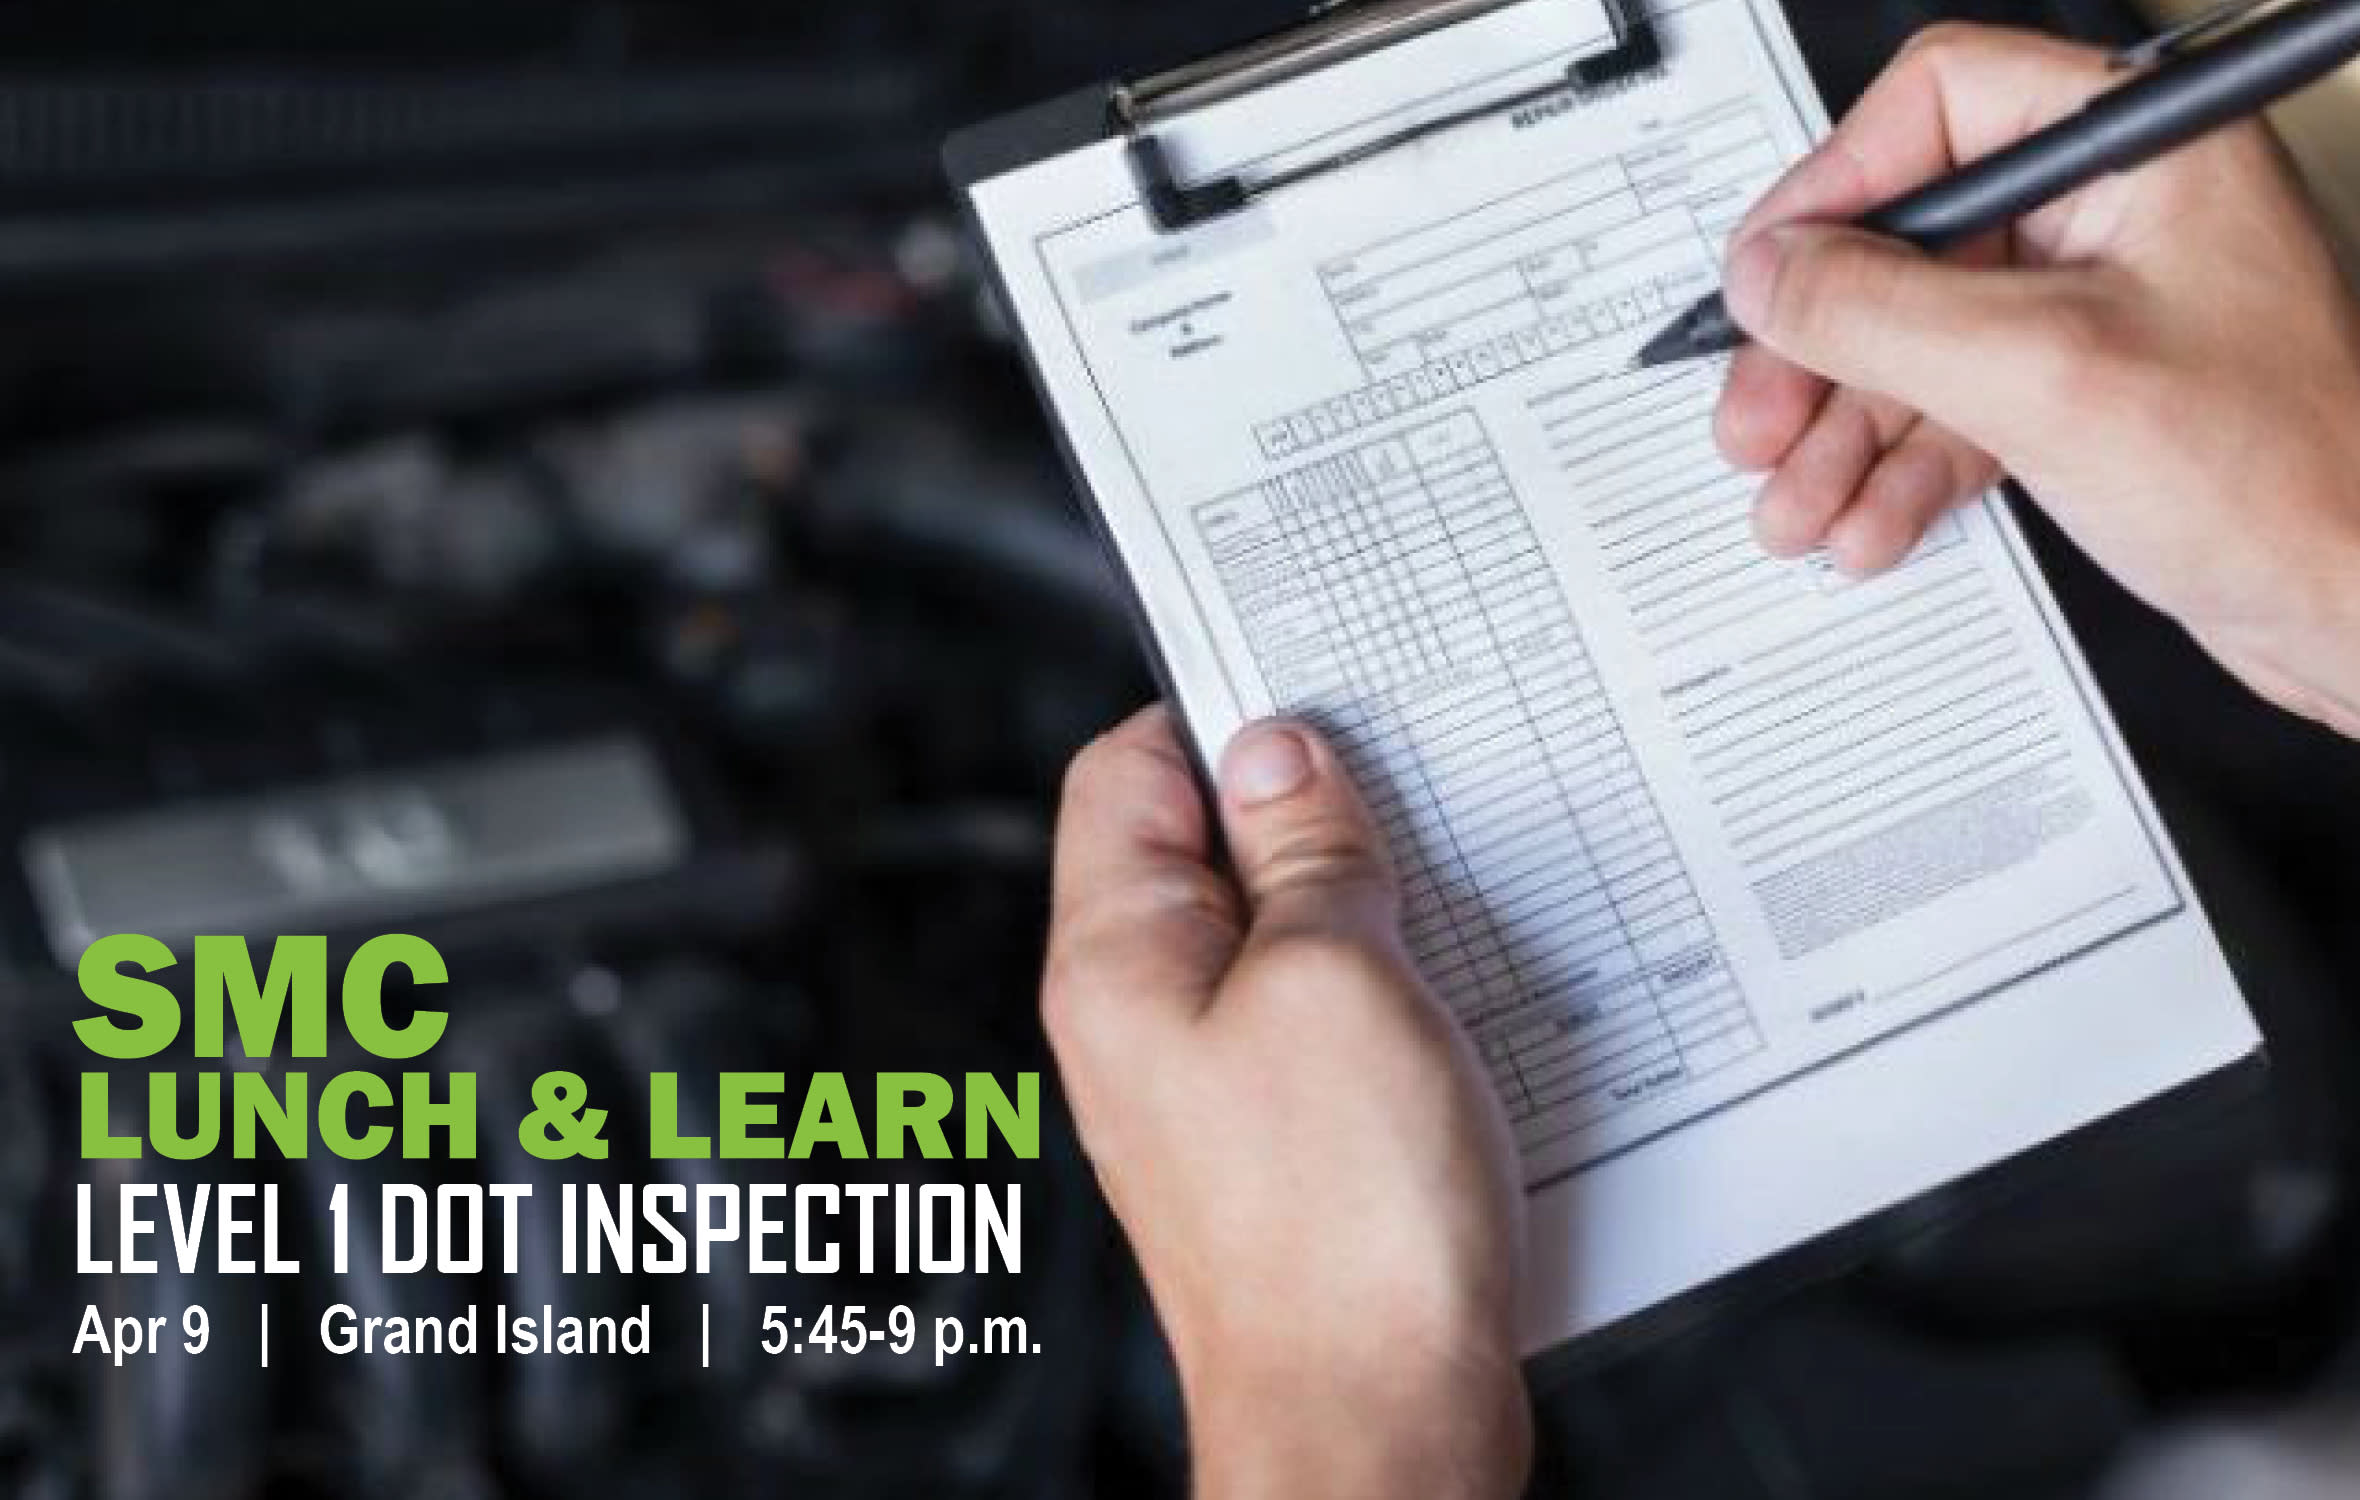 Level 1 DOT Inspection, SMC Lunch & Learn, Grand Island